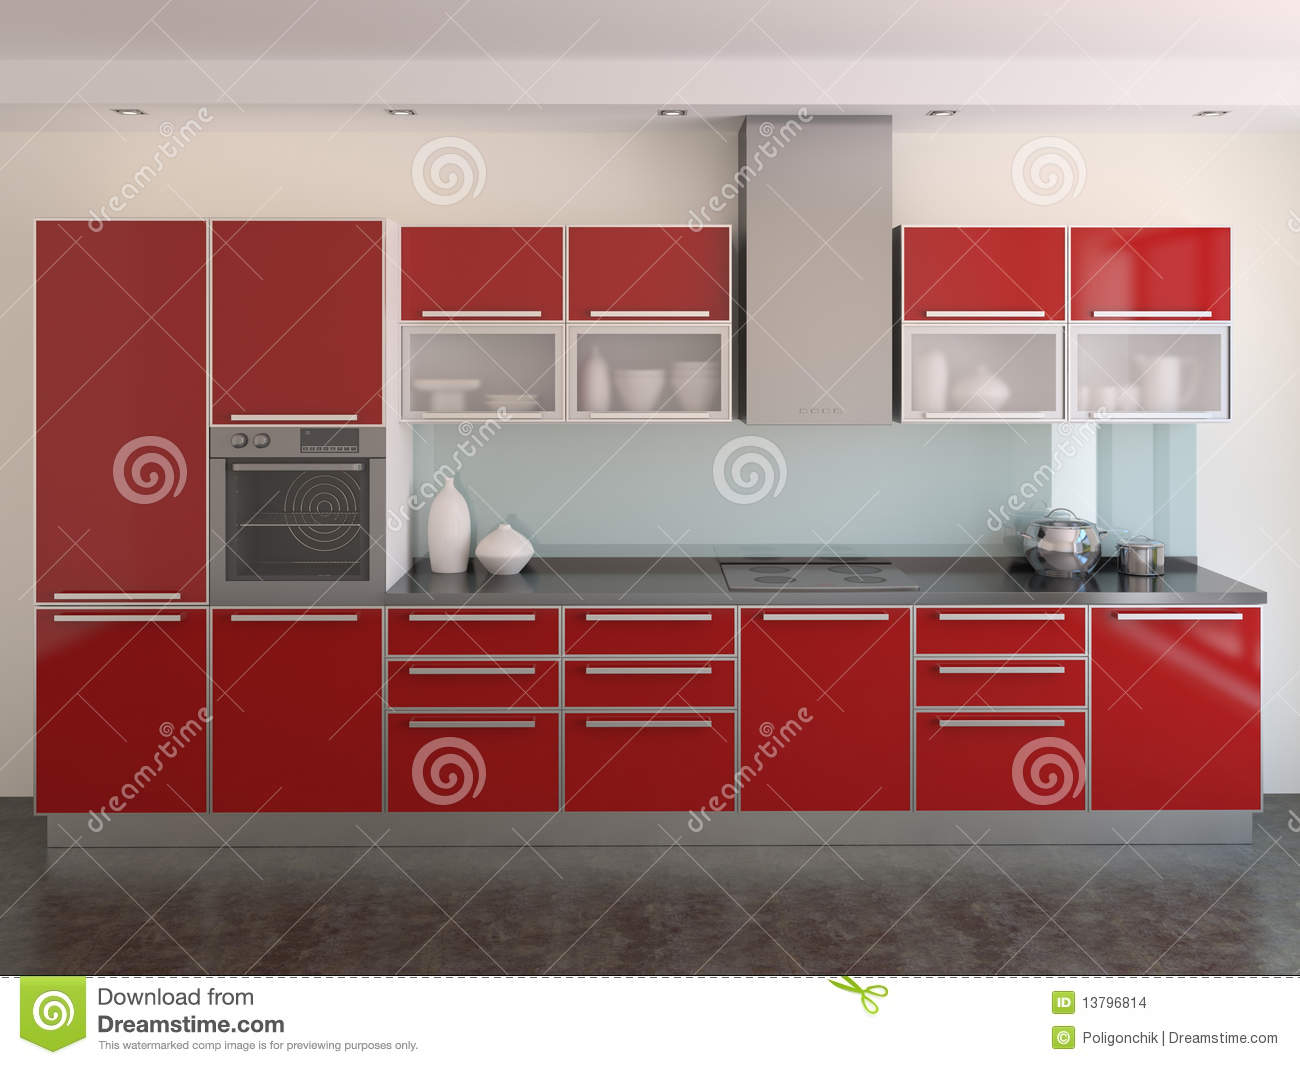 cuisine rouge moderne images stock image 13796814. Black Bedroom Furniture Sets. Home Design Ideas